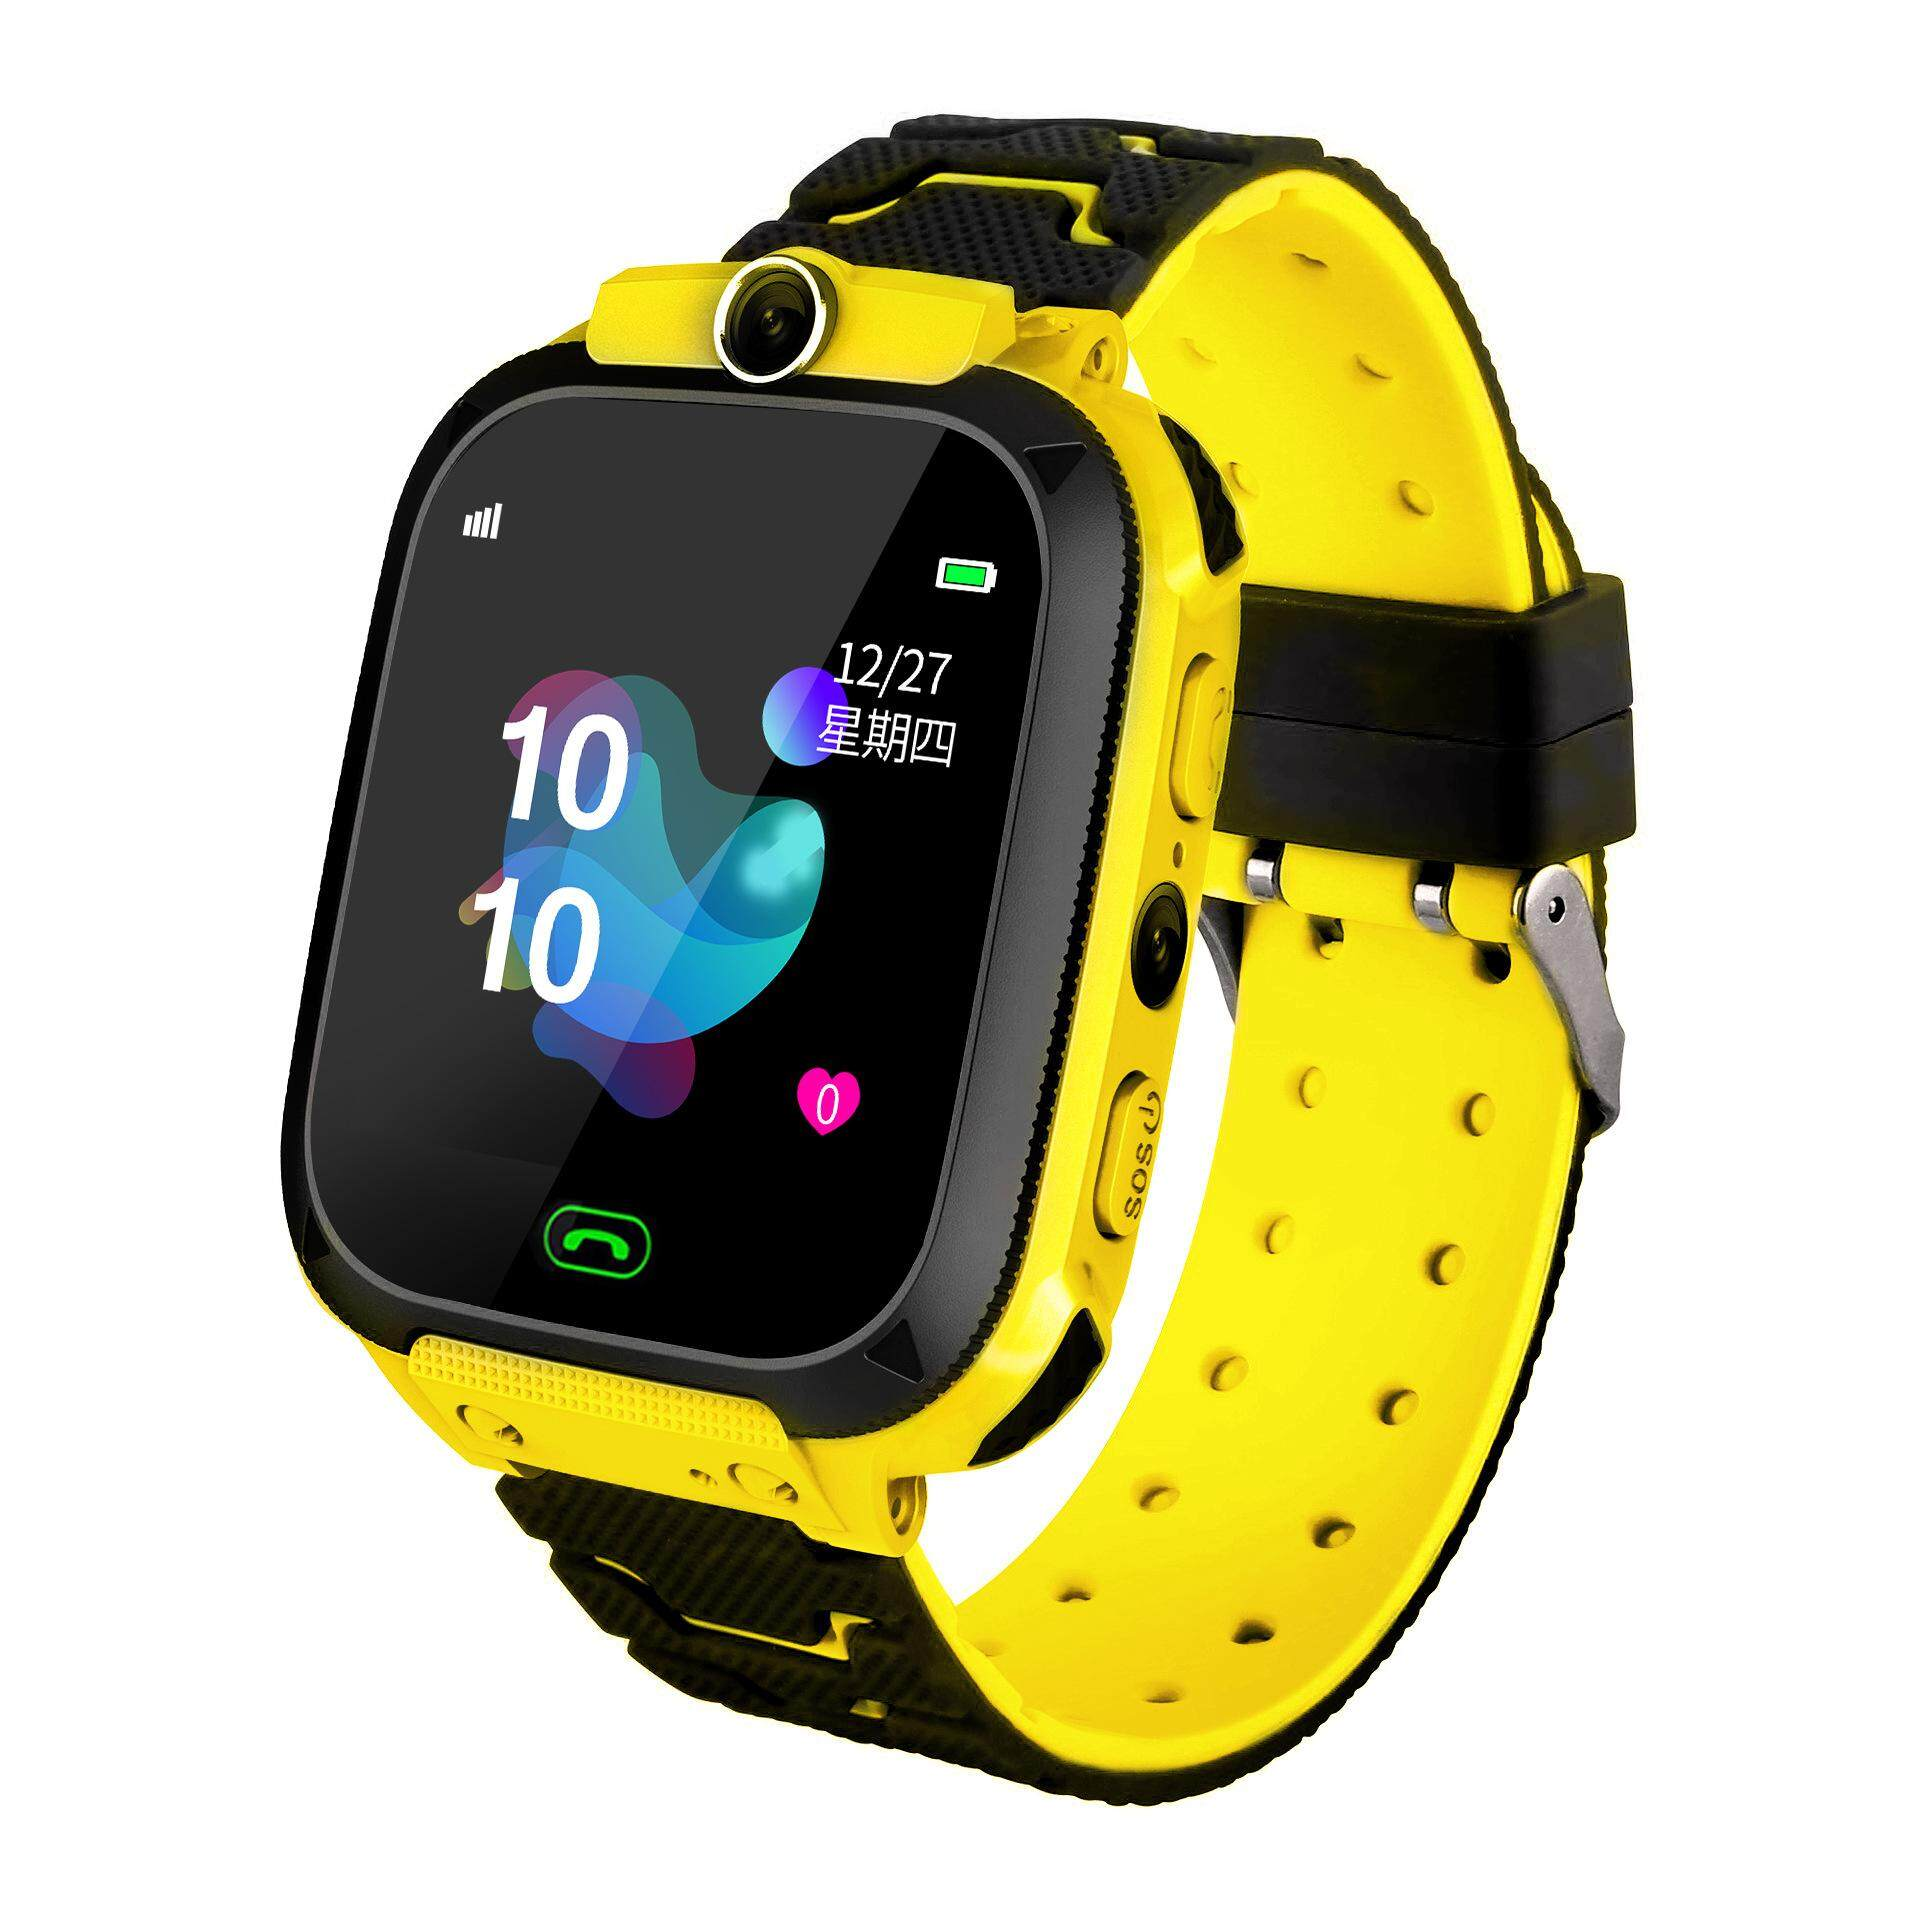 COD Child Smartwatch Q12 Smart Watch IPX7 Waterproof Swim Level Malaysia